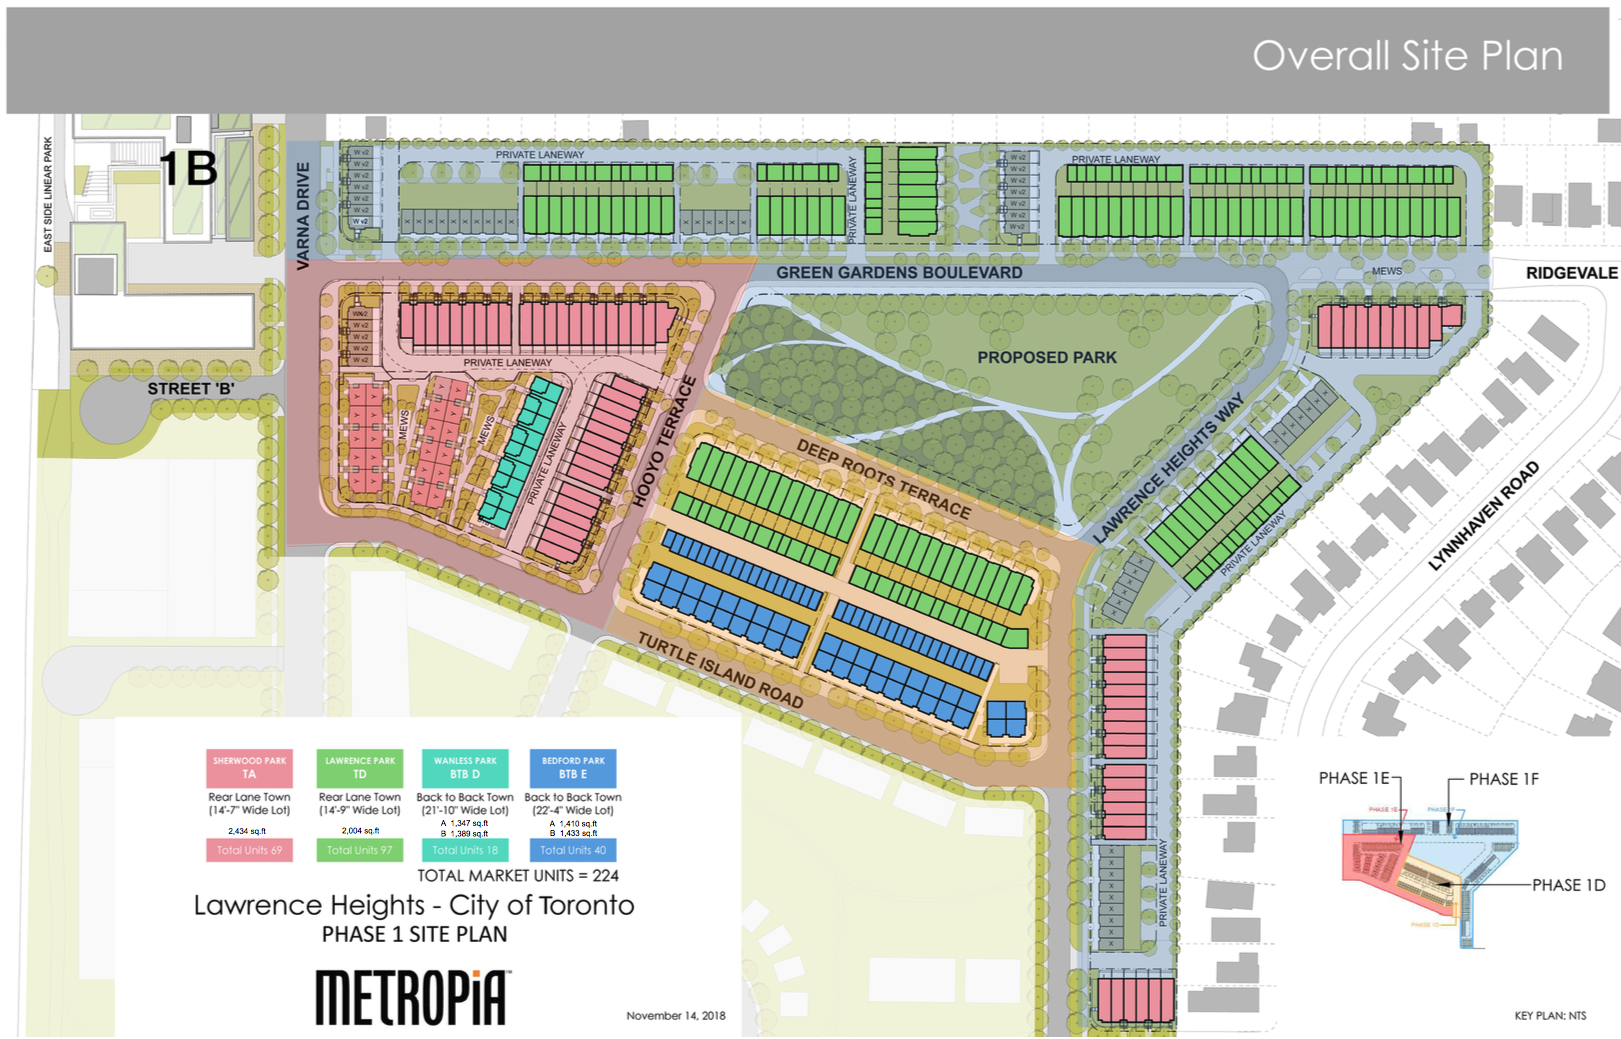 The New Lawrence Heights Community Site Plan